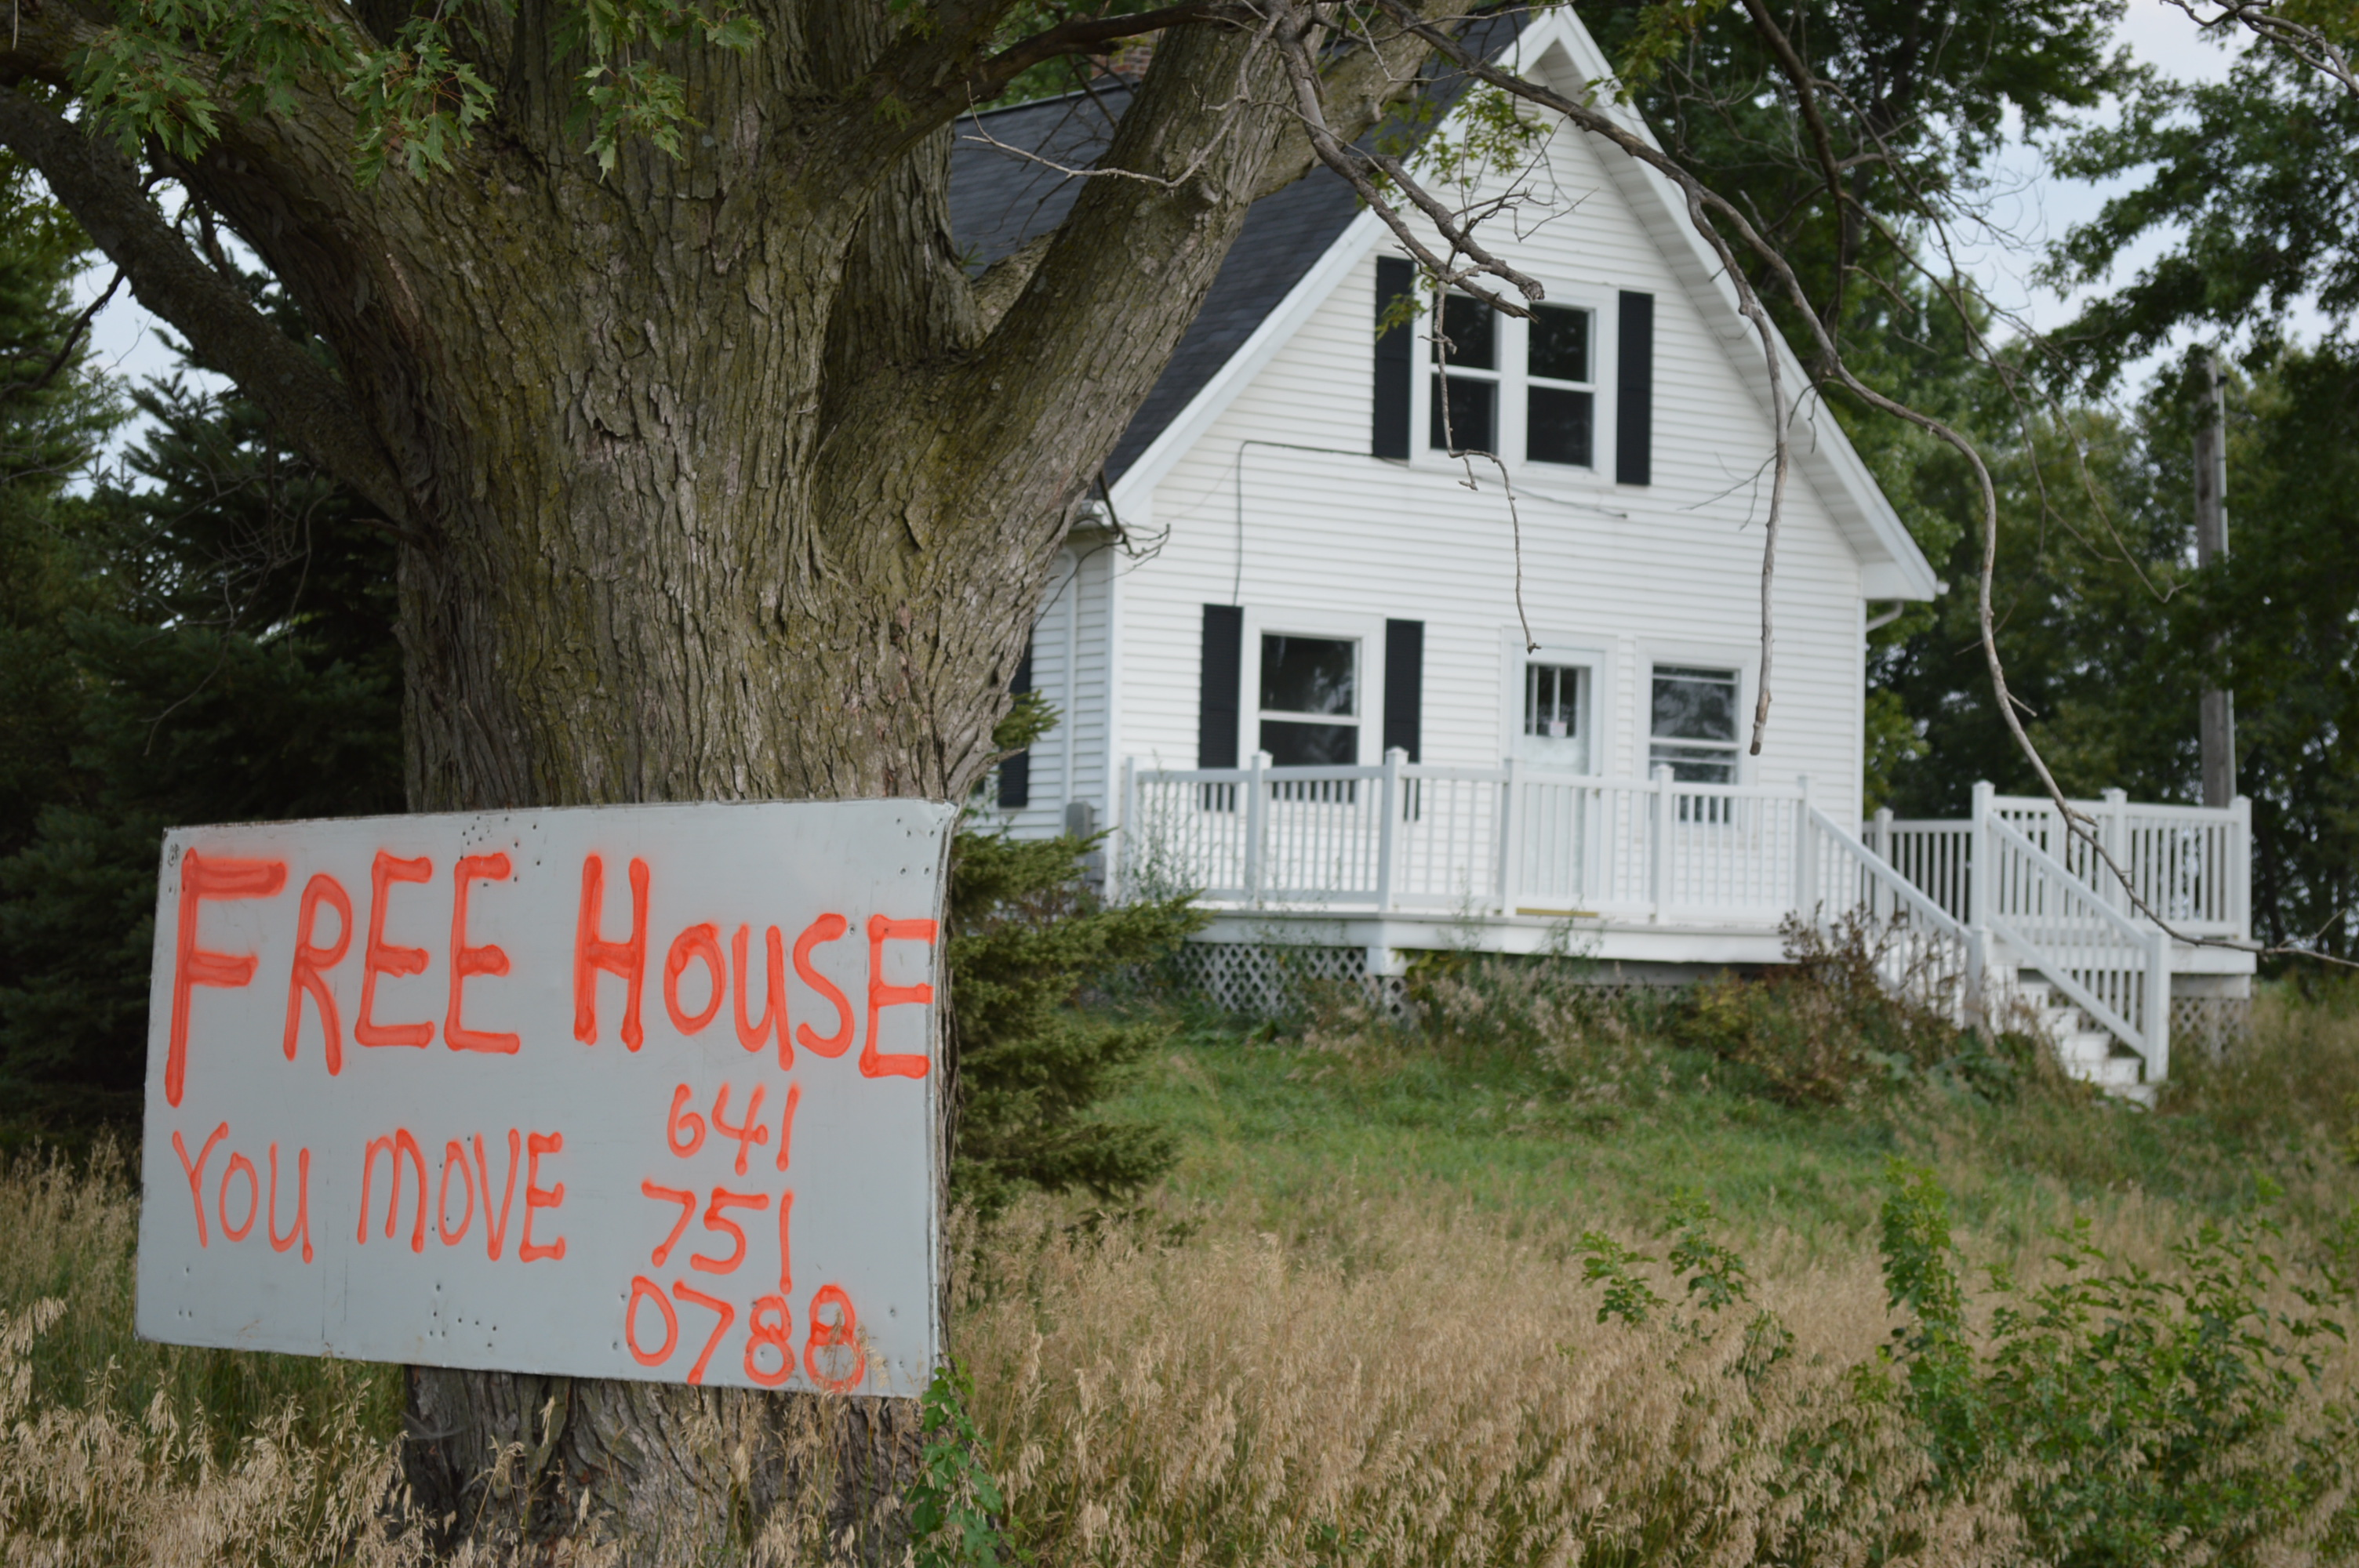 Free house sign attracts attention near blairstown home for One and a half story homes